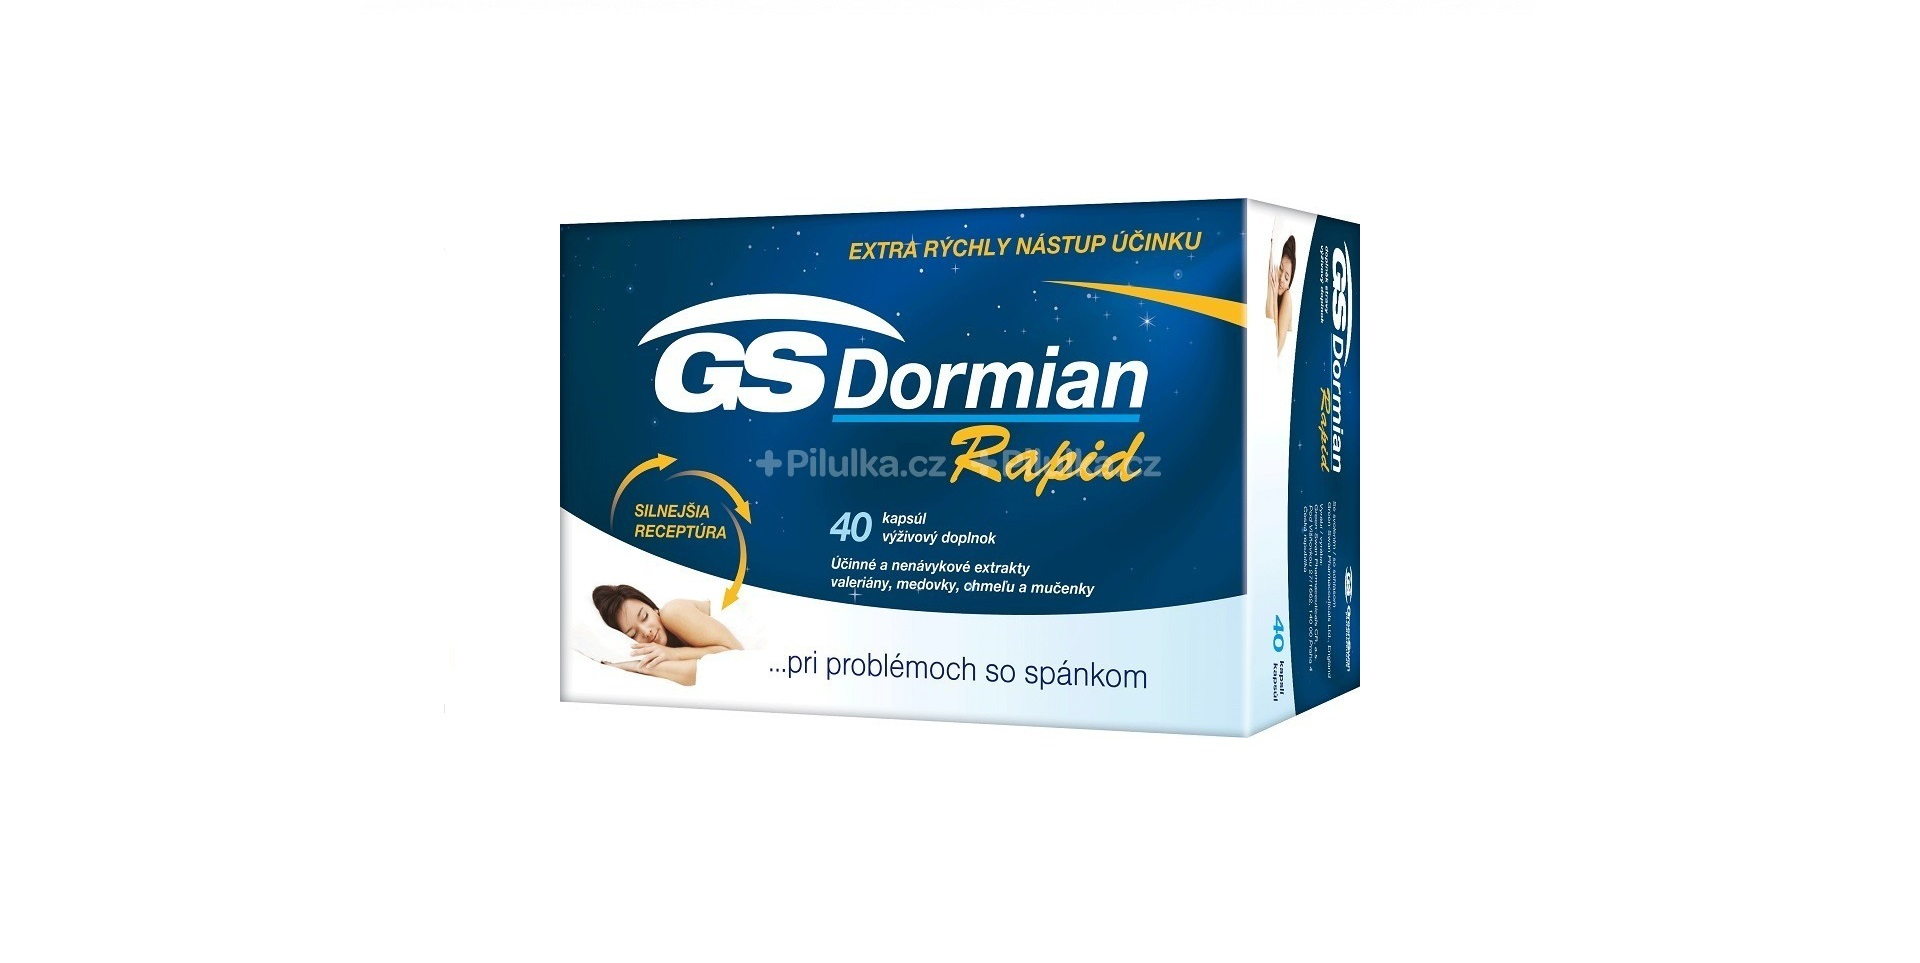 gs dormian rapid